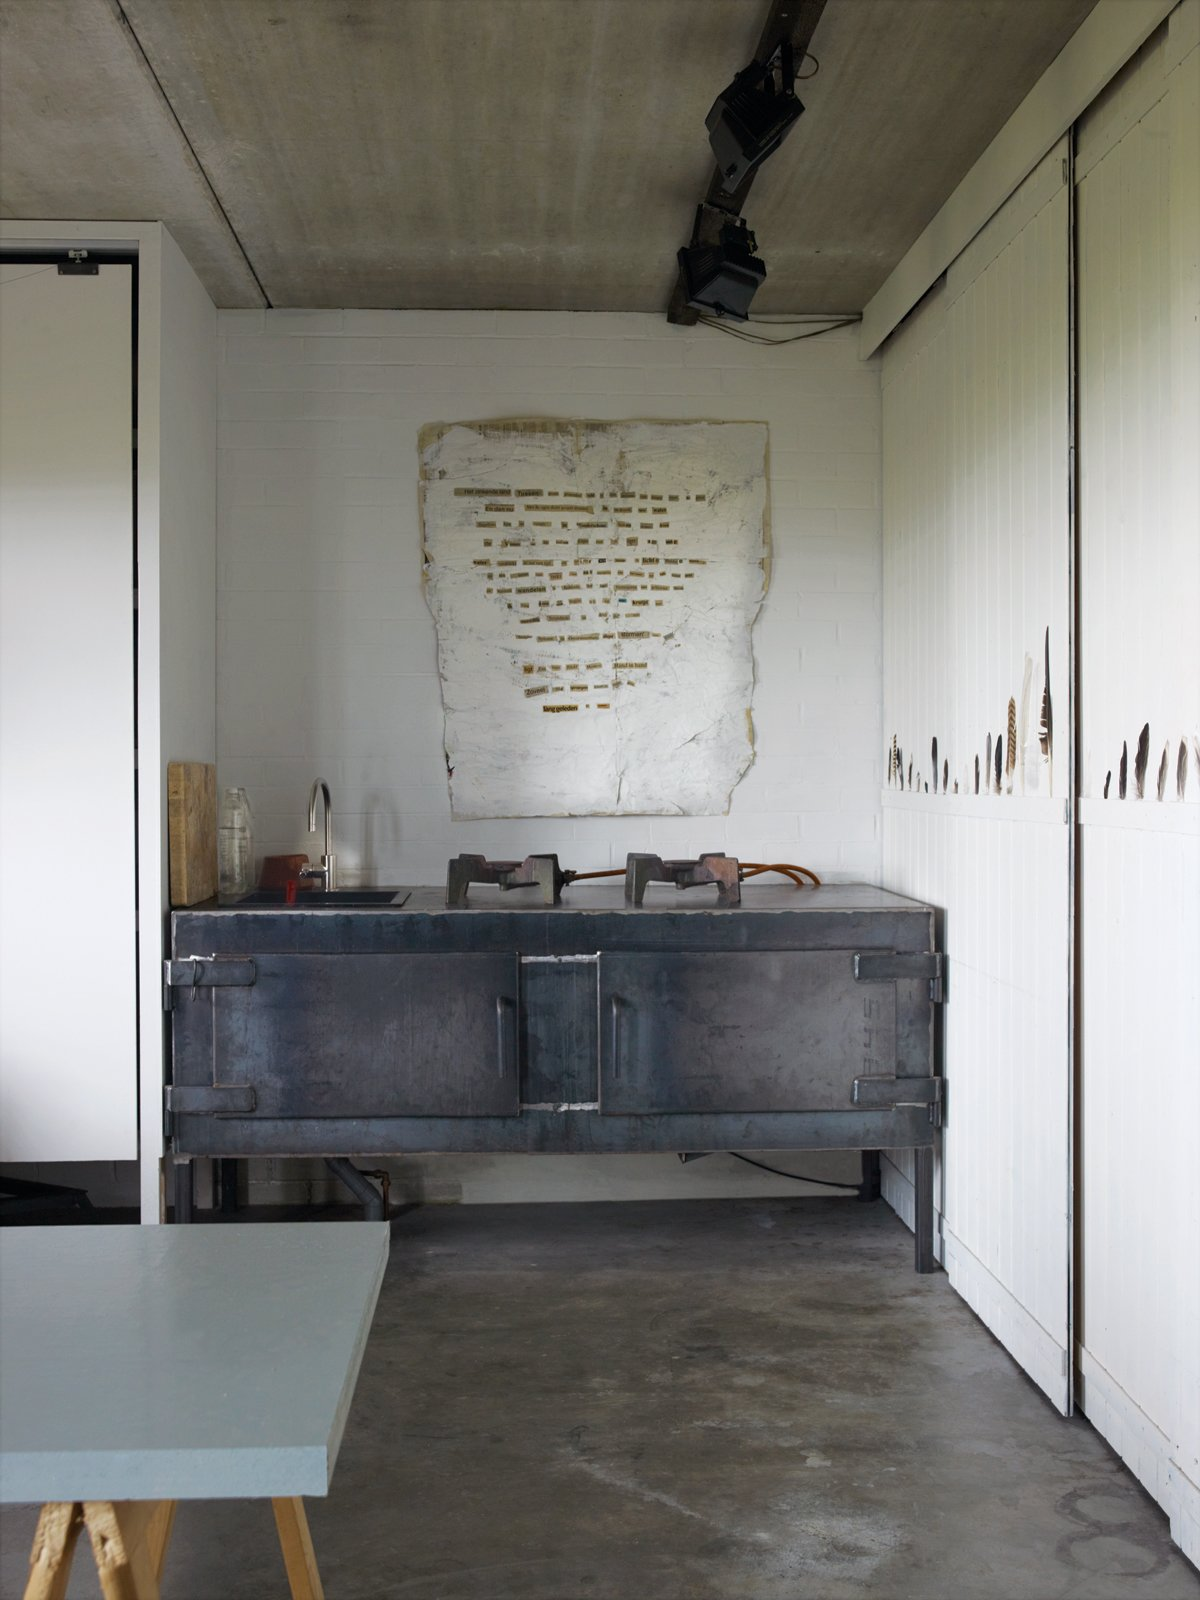 """Downstairs, in what was formerly a tractor garage, Leen created a felt-making studio and hangout space that she calls, in her creative English-as-a-third-language way, """"the chill room of me.""""  Photo 10 of 15 in Rural Home on a Holland Harbor"""